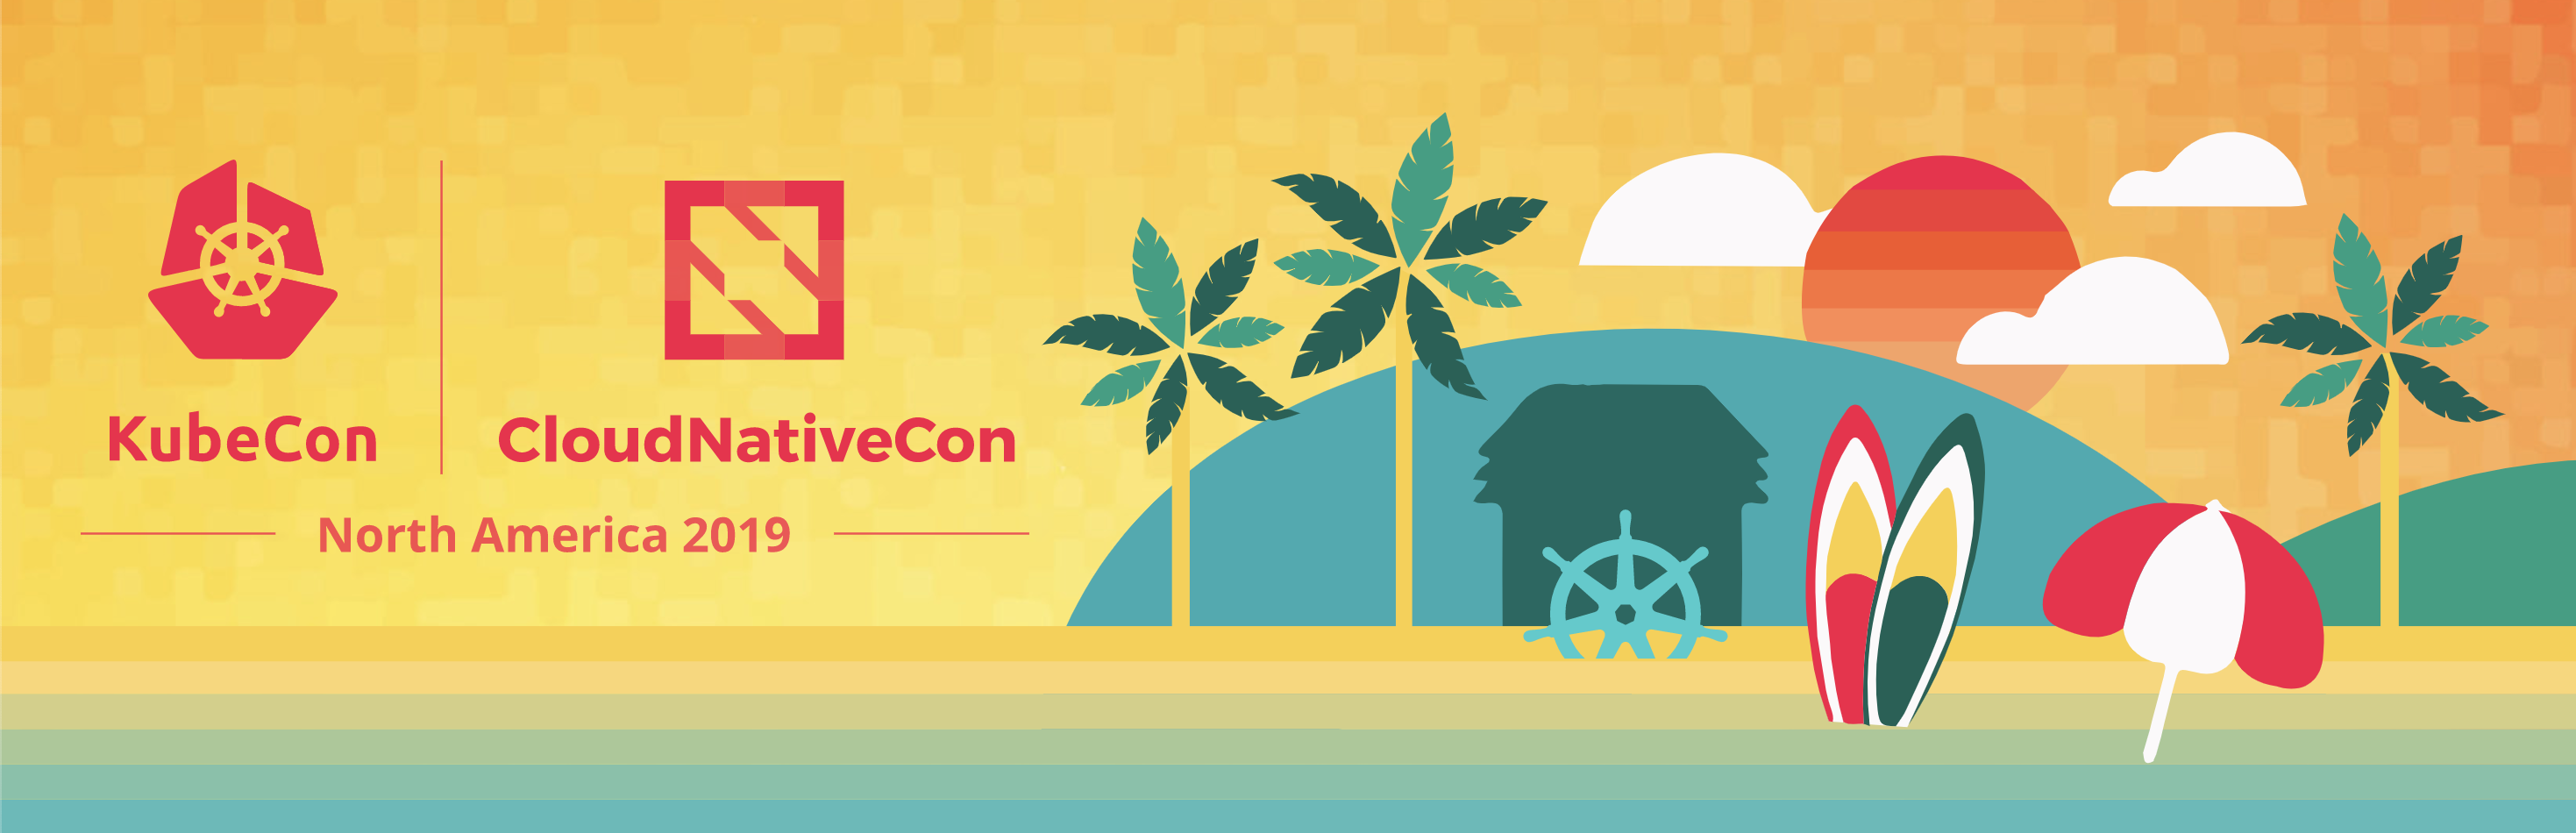 Our Top Highlights From KubeCon + CloudNativeCon San Diego 2019